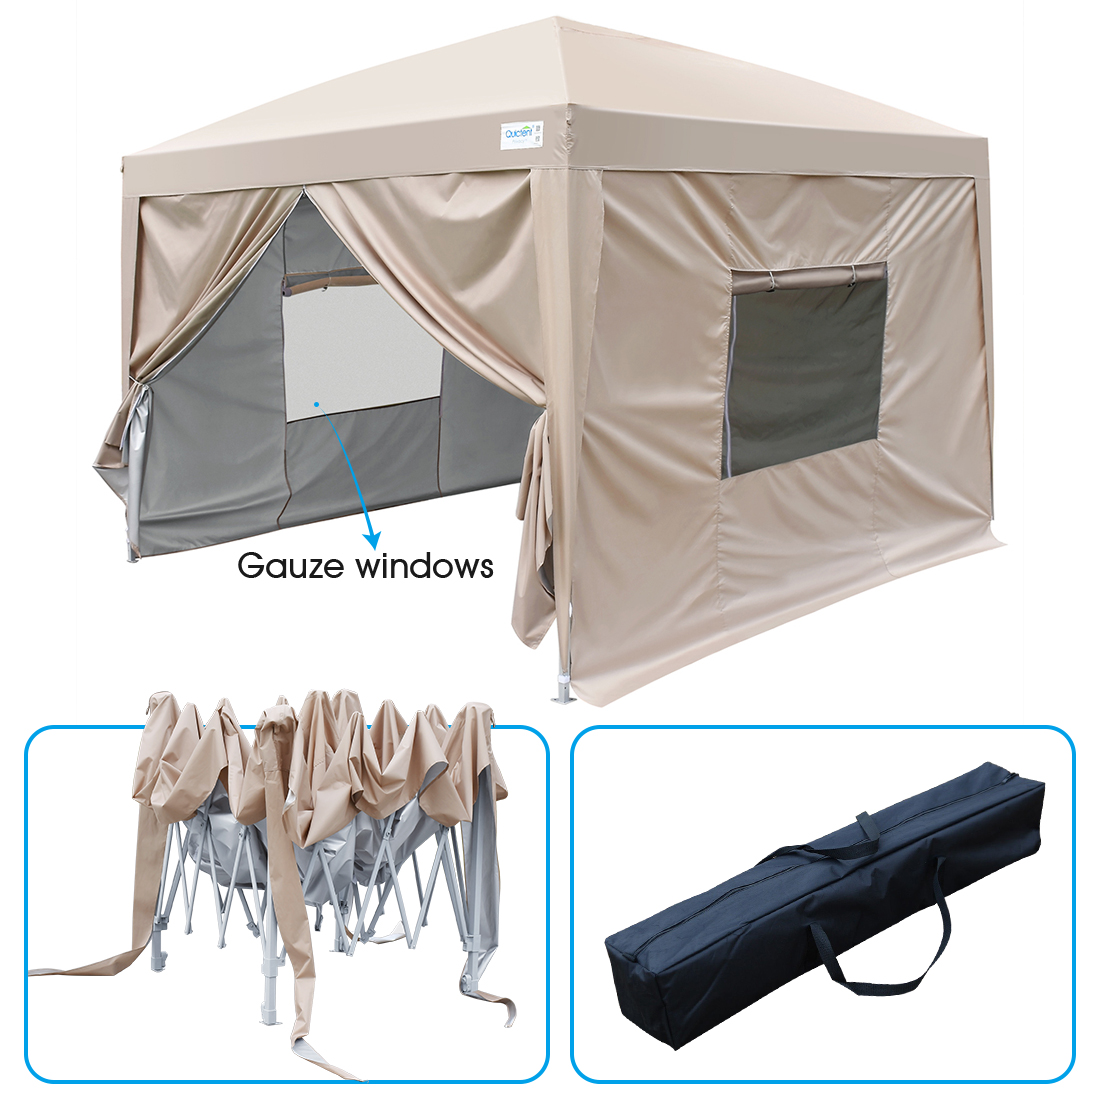 Upgraded Quictent 8x8 EZ Pop Up Canopy Gazebo Party Tent with Mesh Windows and Sidewalls 100% Waterproof-9 Colors (Beige)